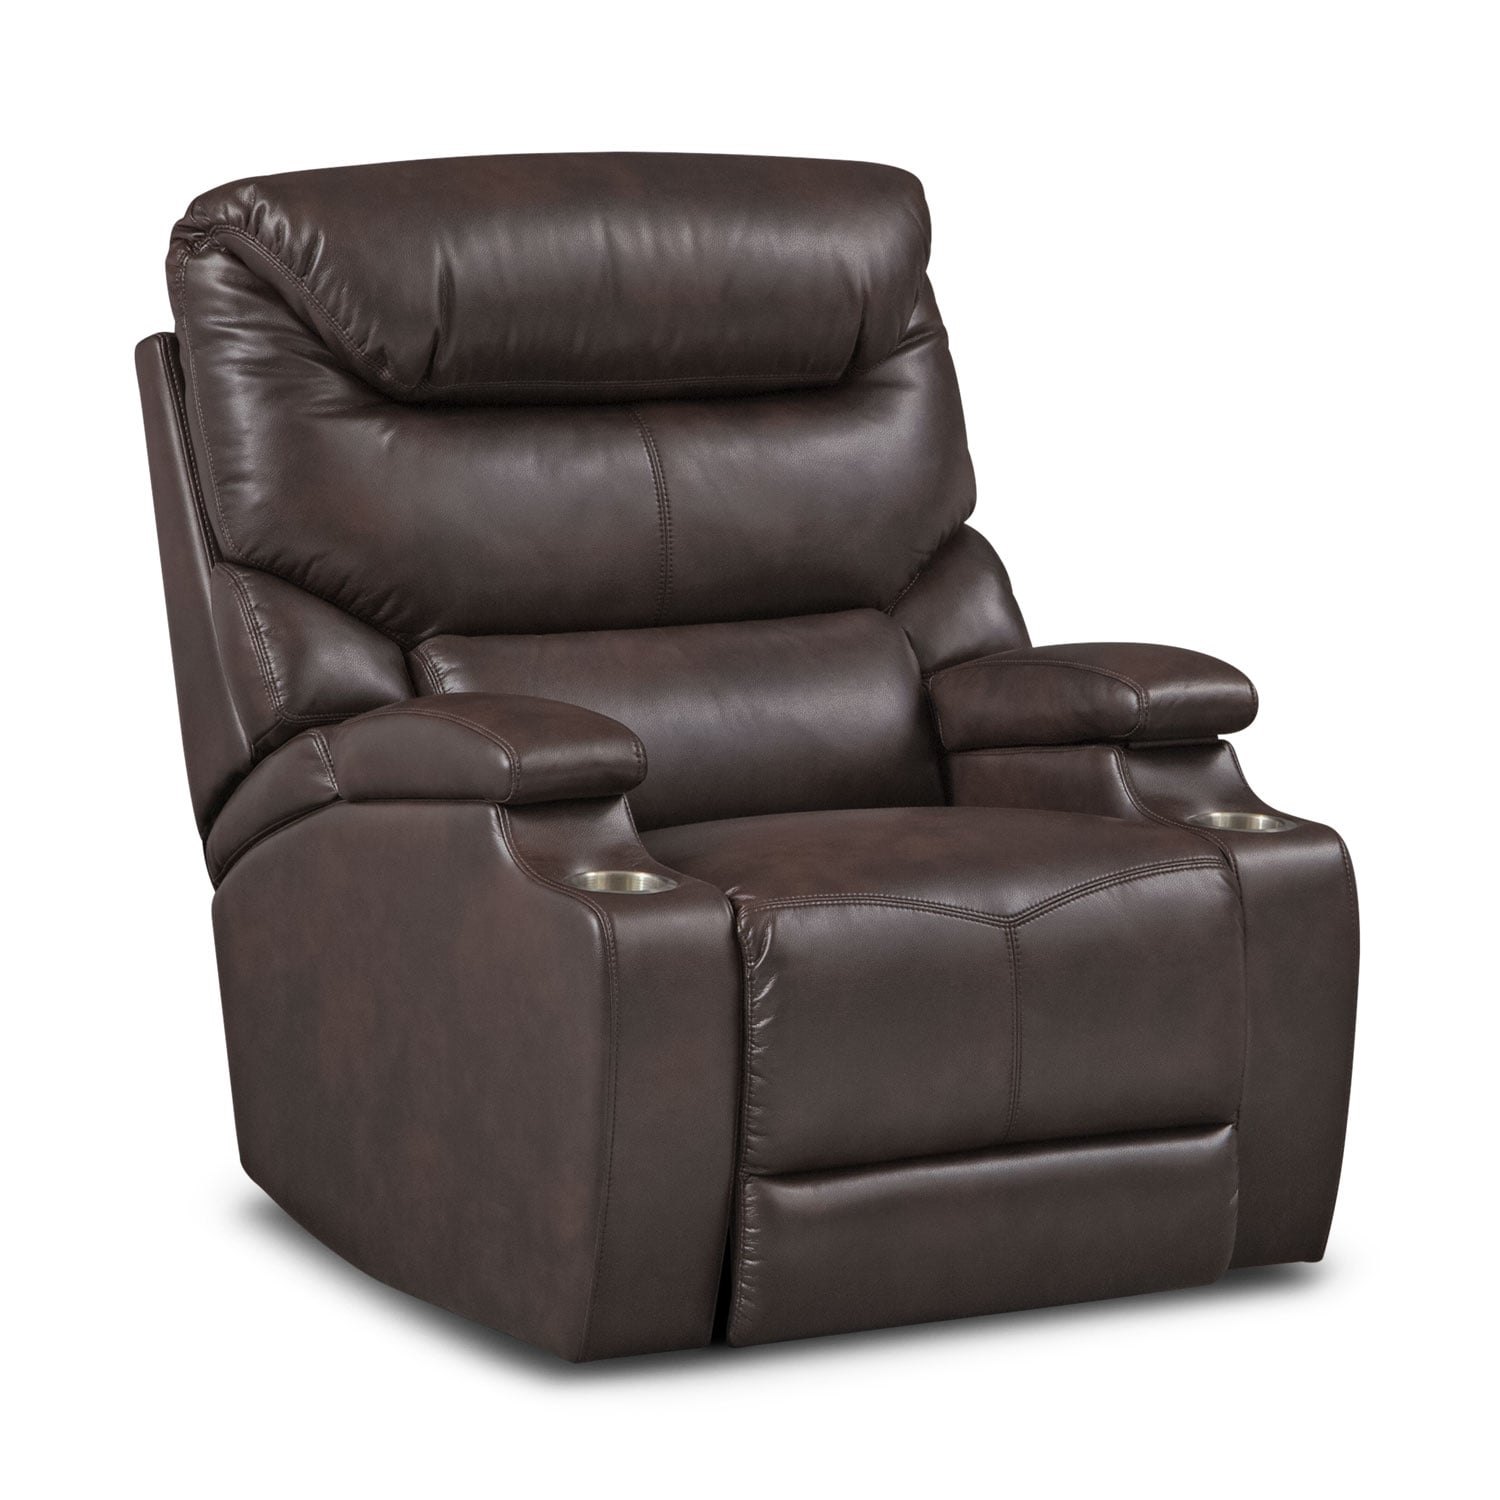 Jupiter Brown Power Recliner